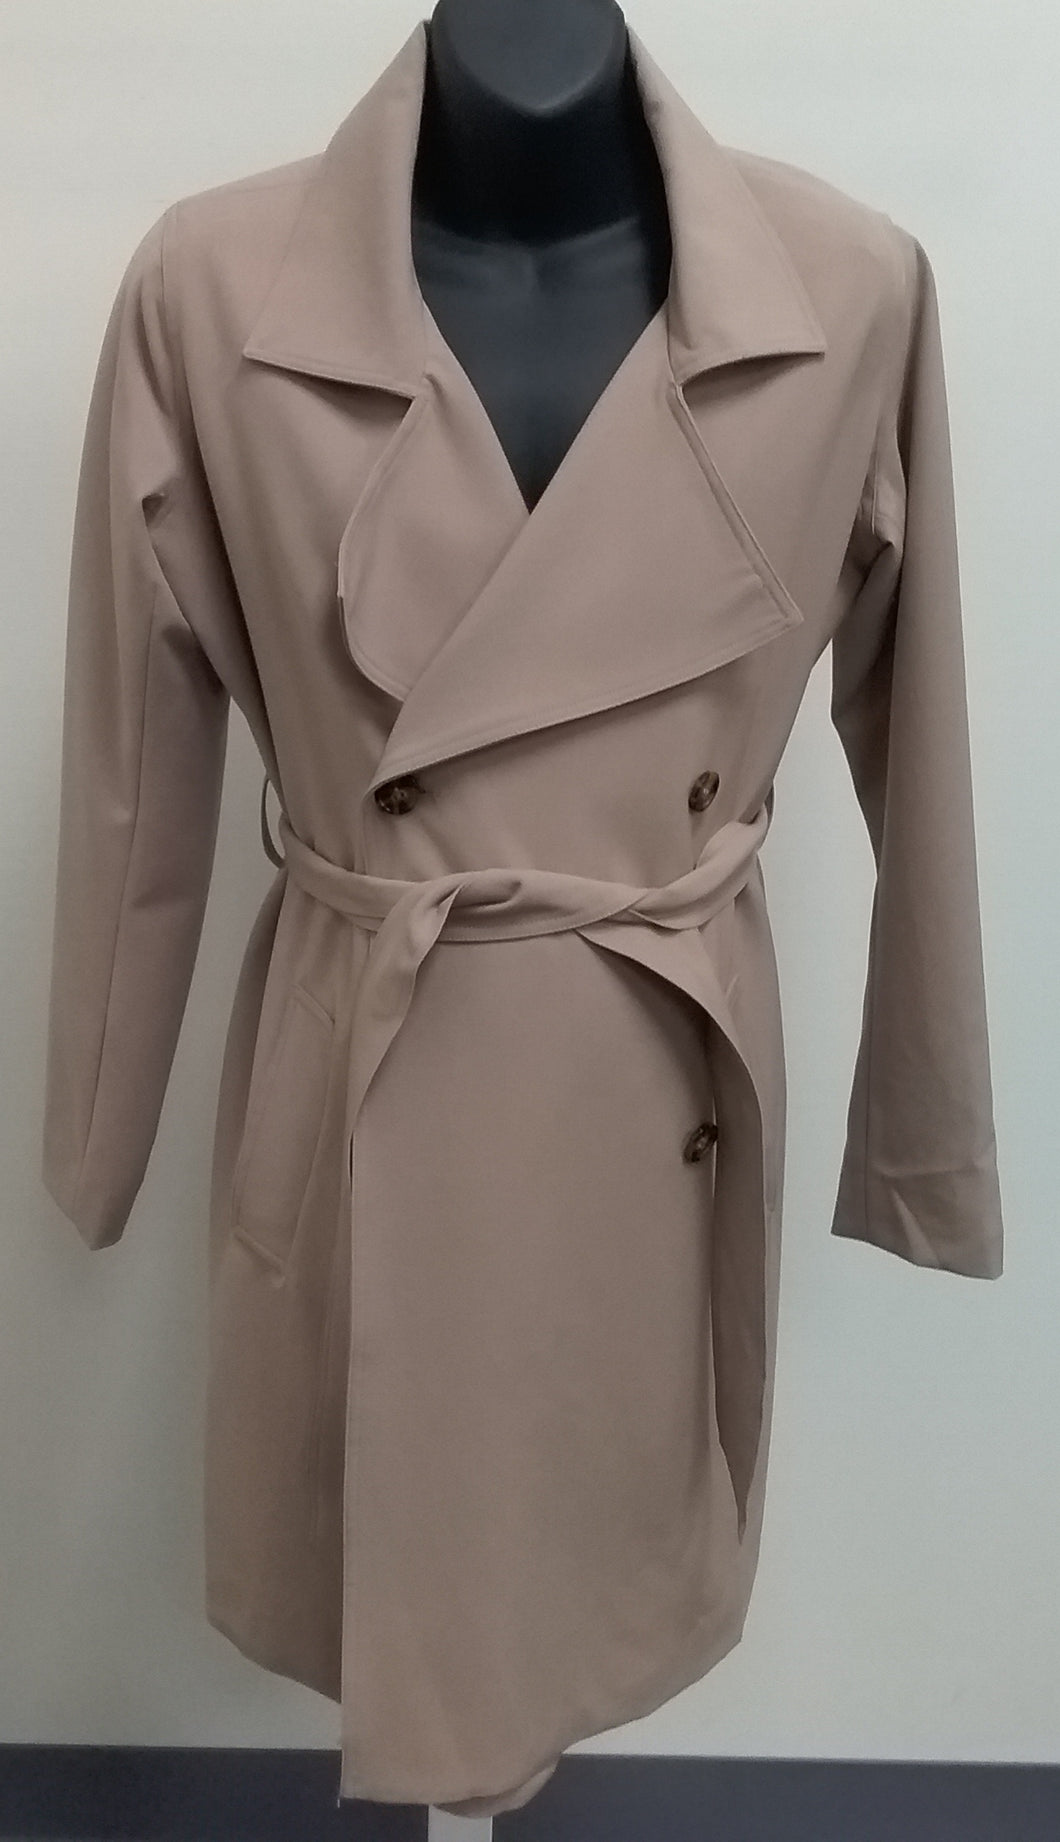 New Small Tan Maternity Trench Coat